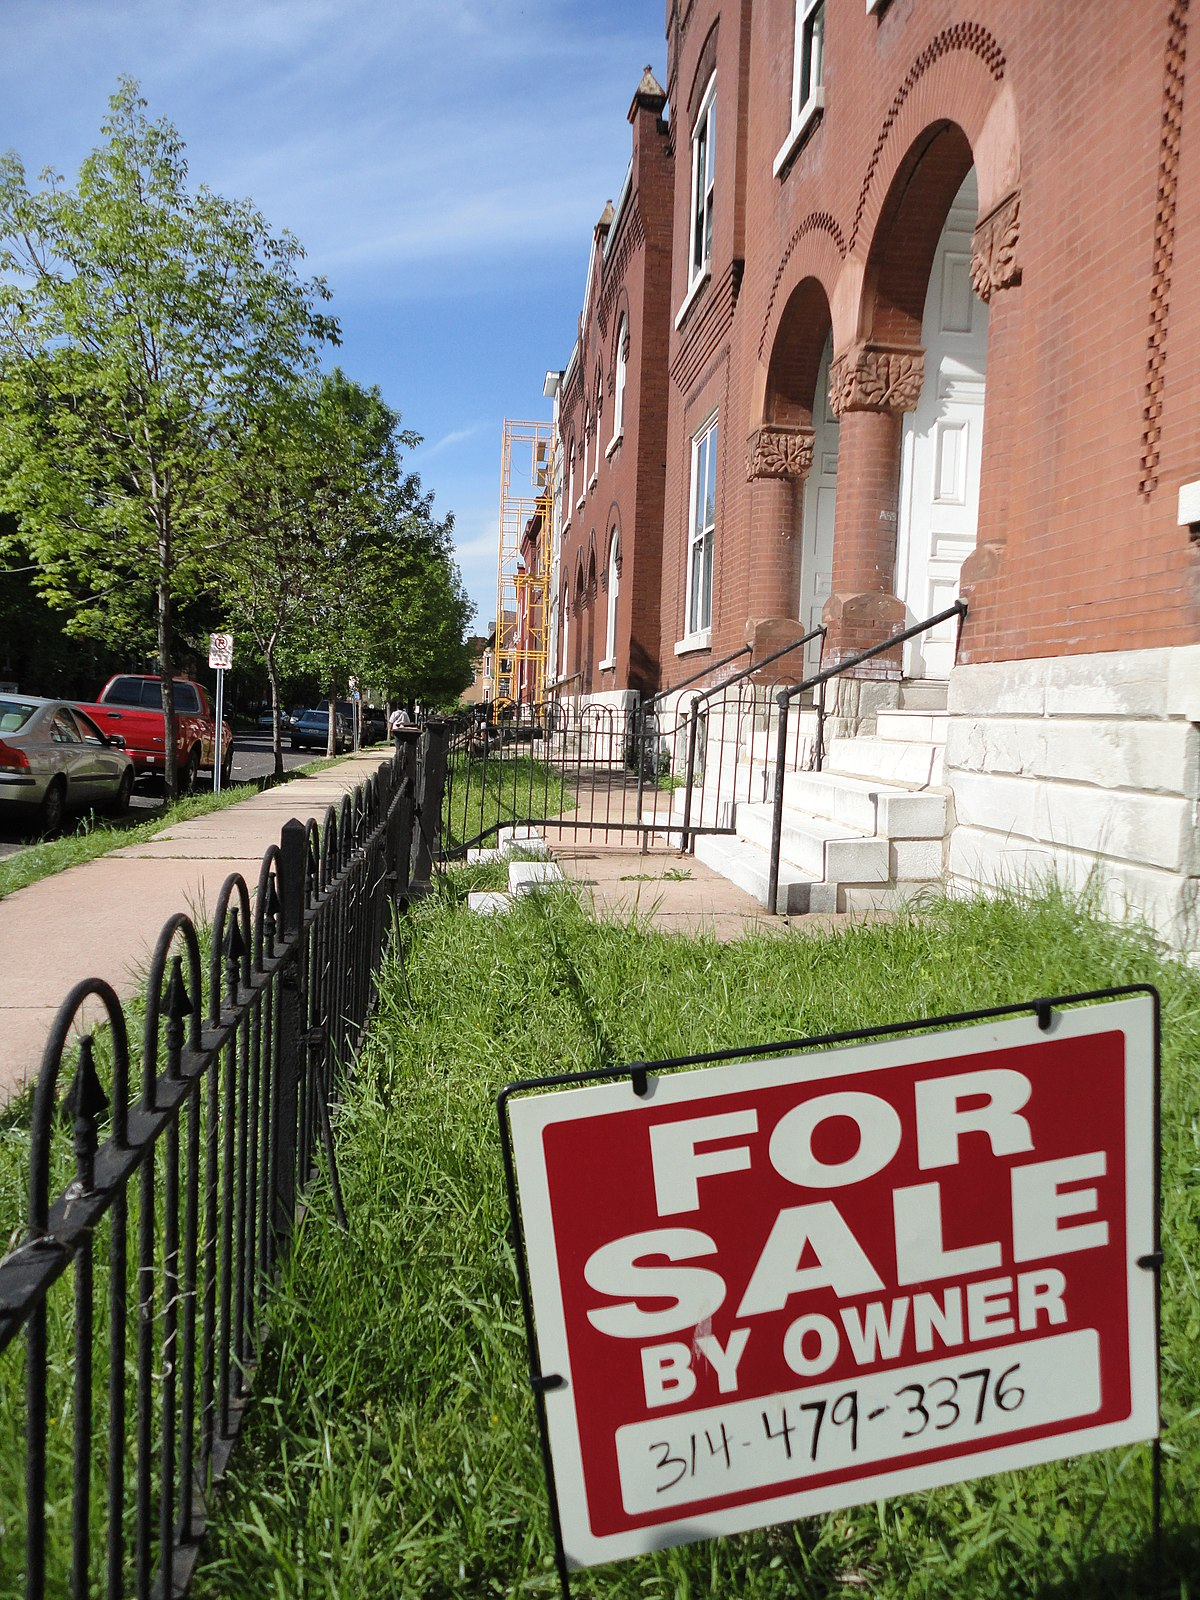 For sale by owner - Wikipedia